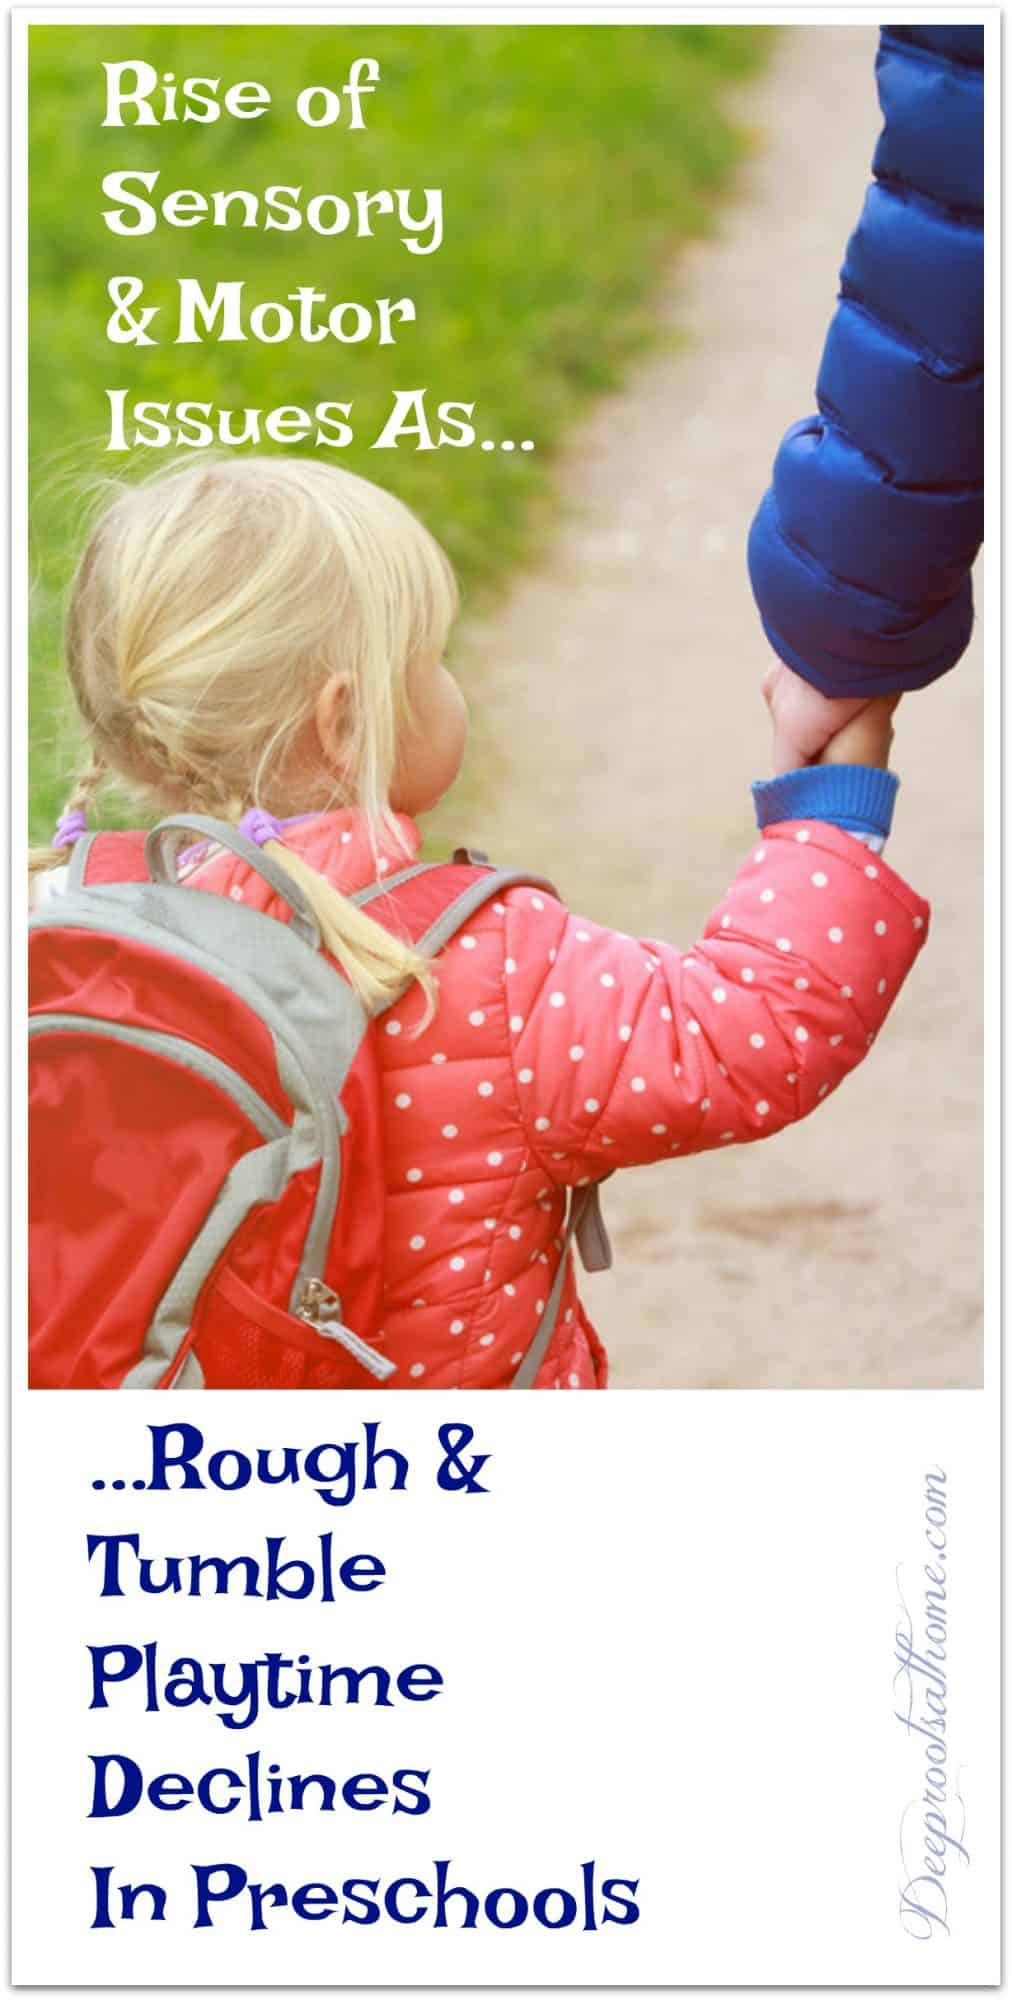 Rise of Sensory/Motor Issues as Rough/Tumble Play in Preschool Declines. Child being led off to school by parent